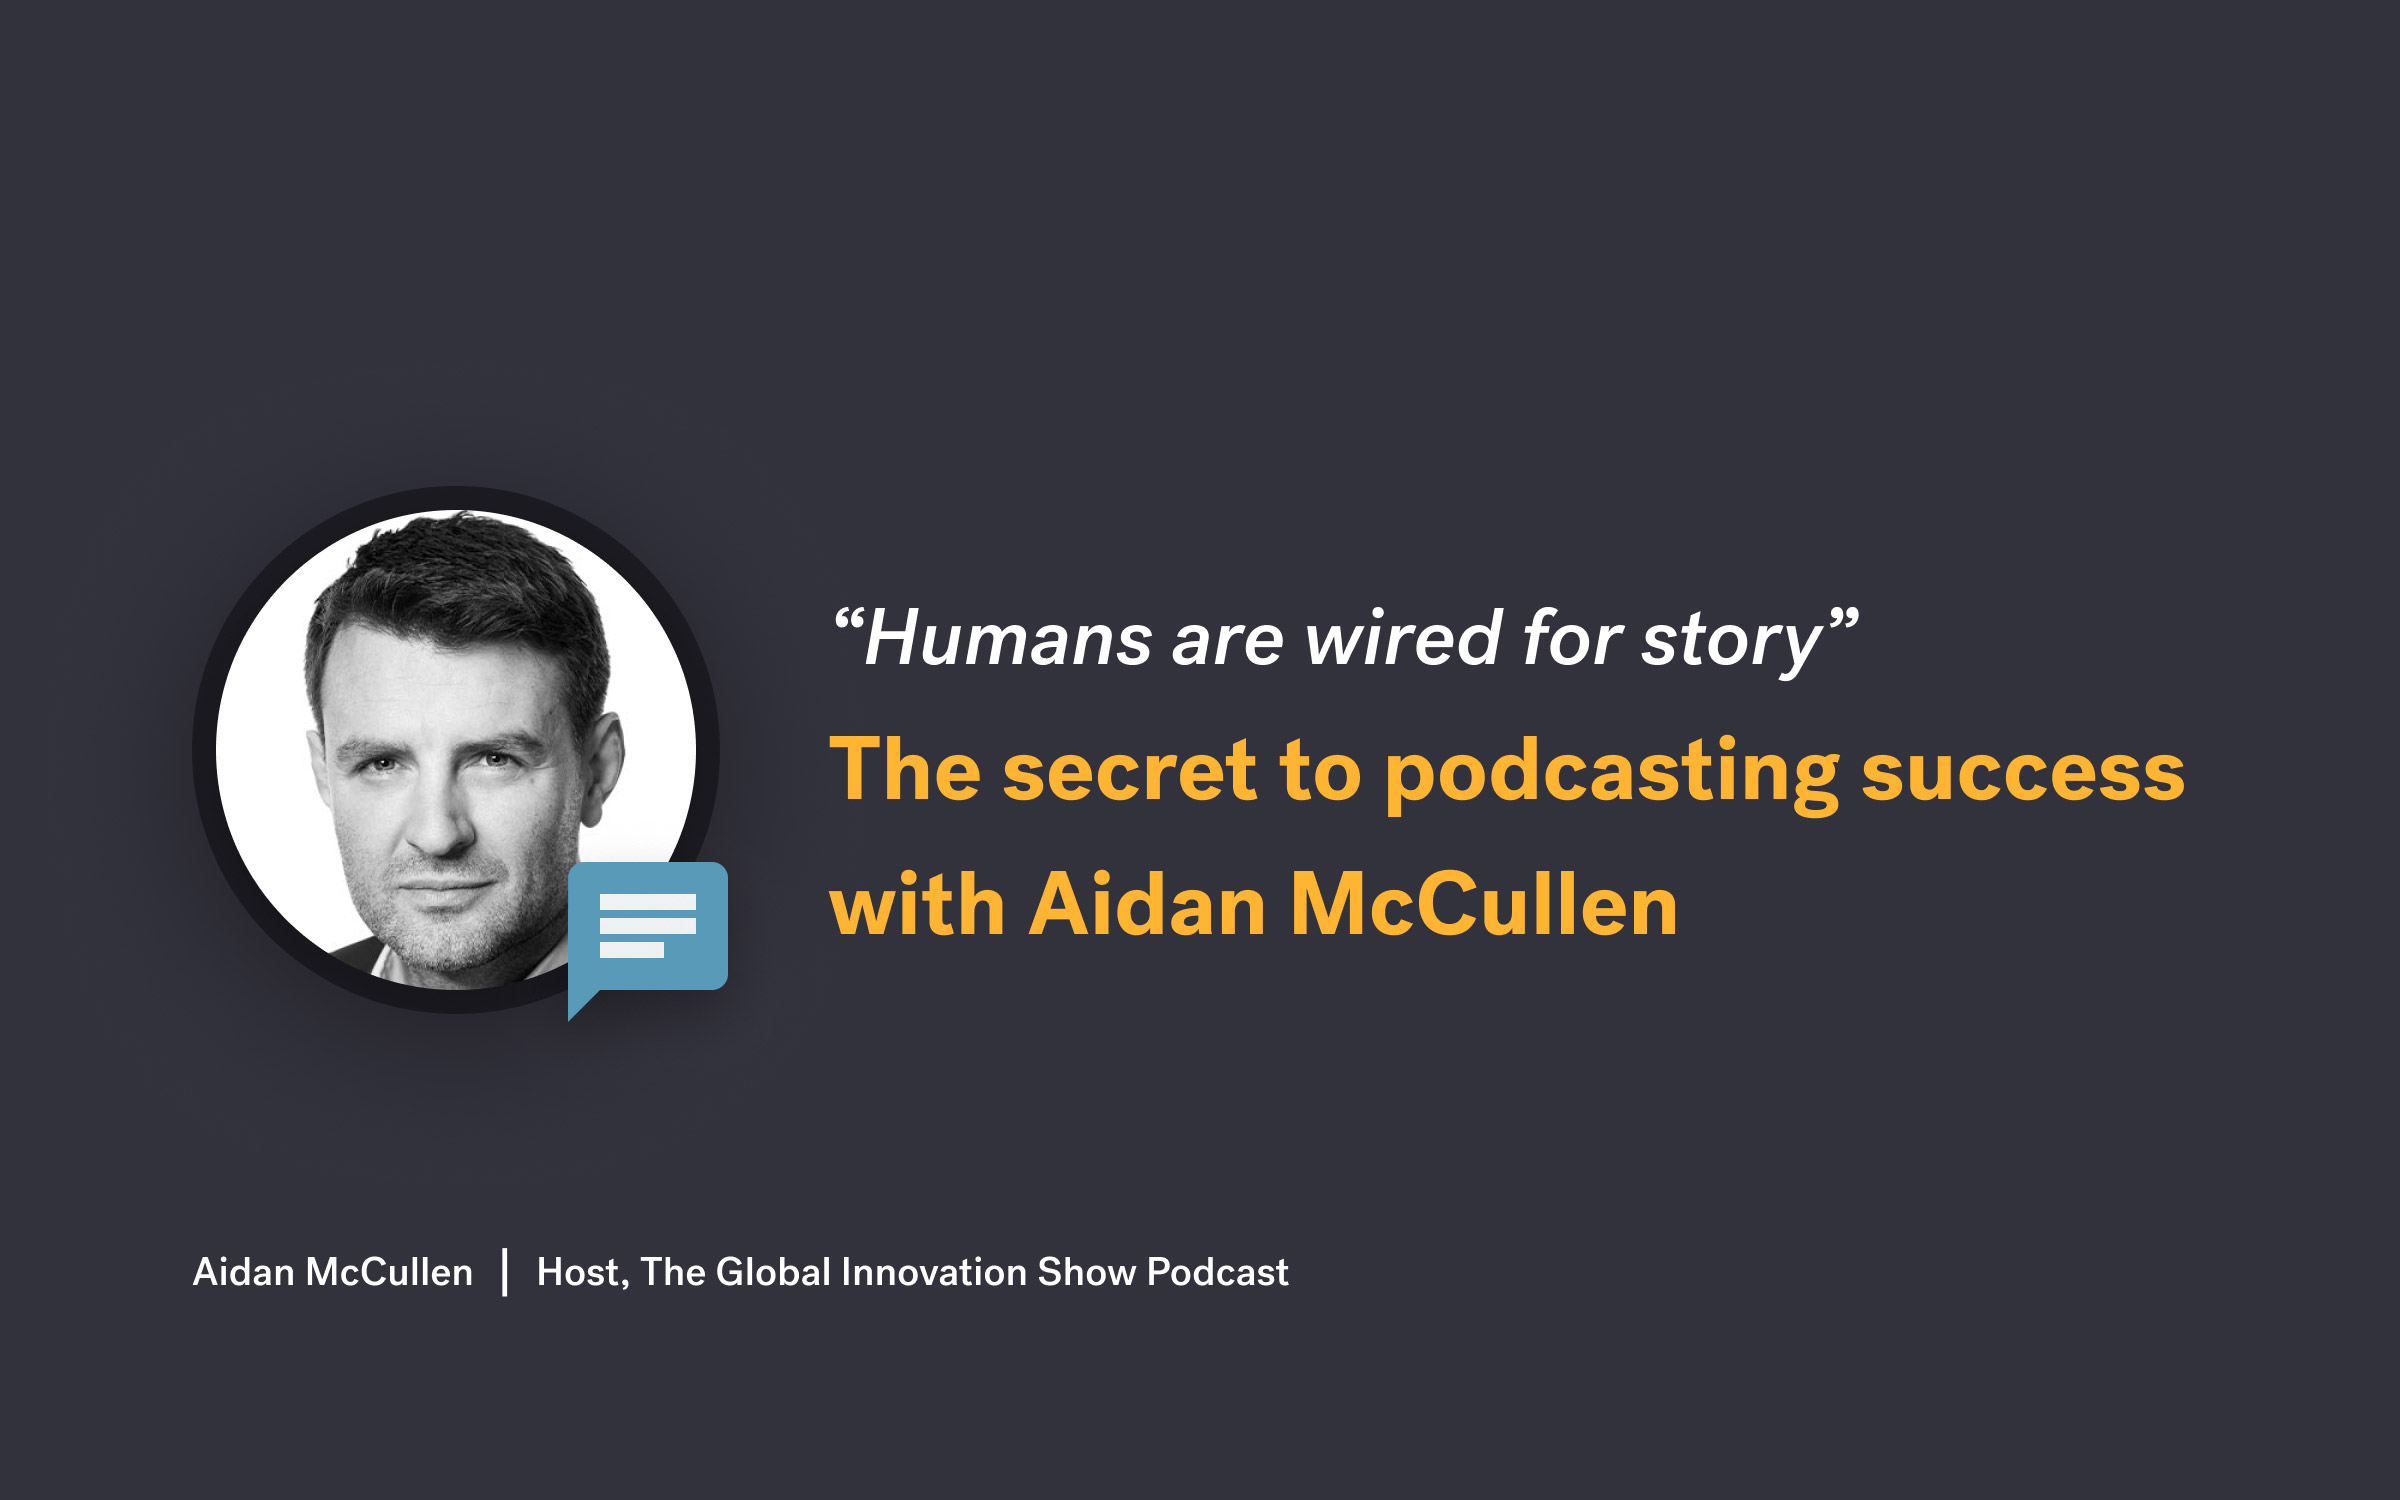 'Humans are wired for story': The secret to podcasting success with Aidan McCullen